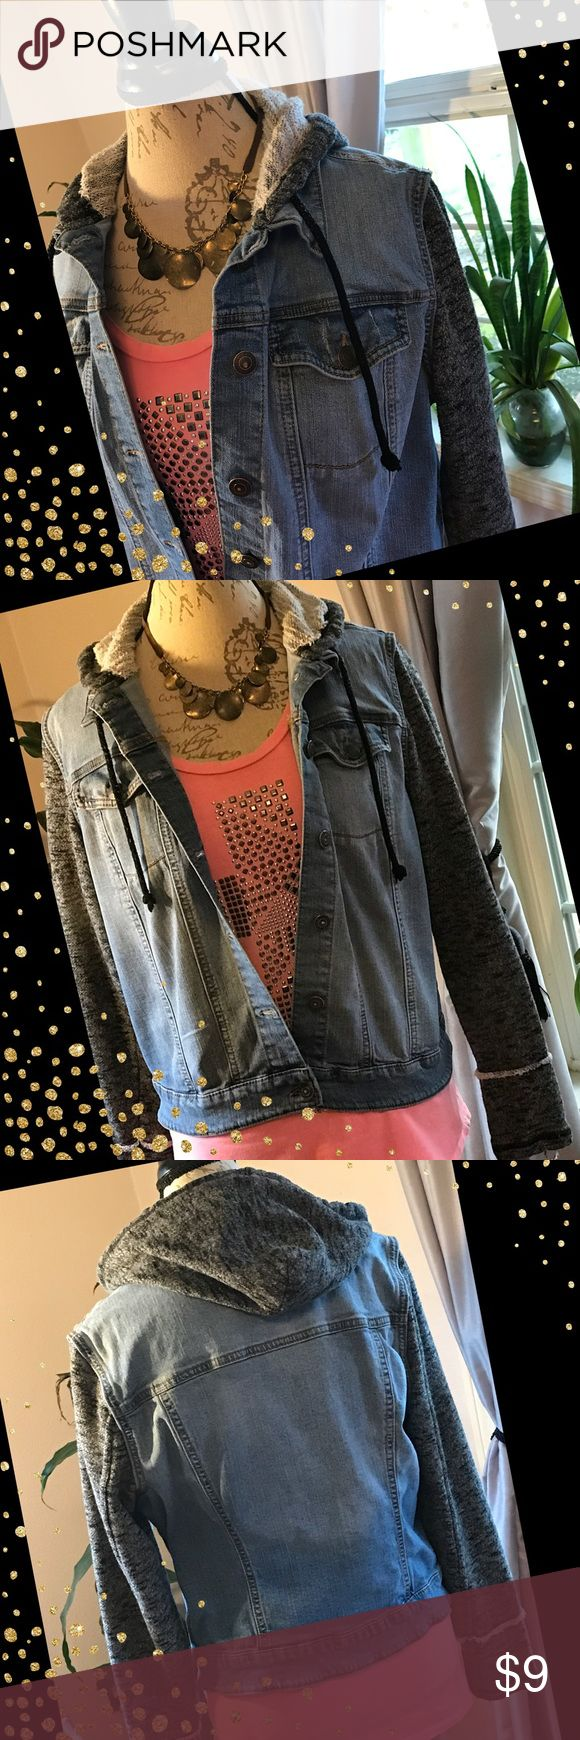 💋Cute hooded jean jacket💋💕🦋 💋💕Collared jean jacket with knitted hood and sleeves.🌼🌻In great used condition 💋💕🦋 Mudd Jackets & Coats Jean Jackets